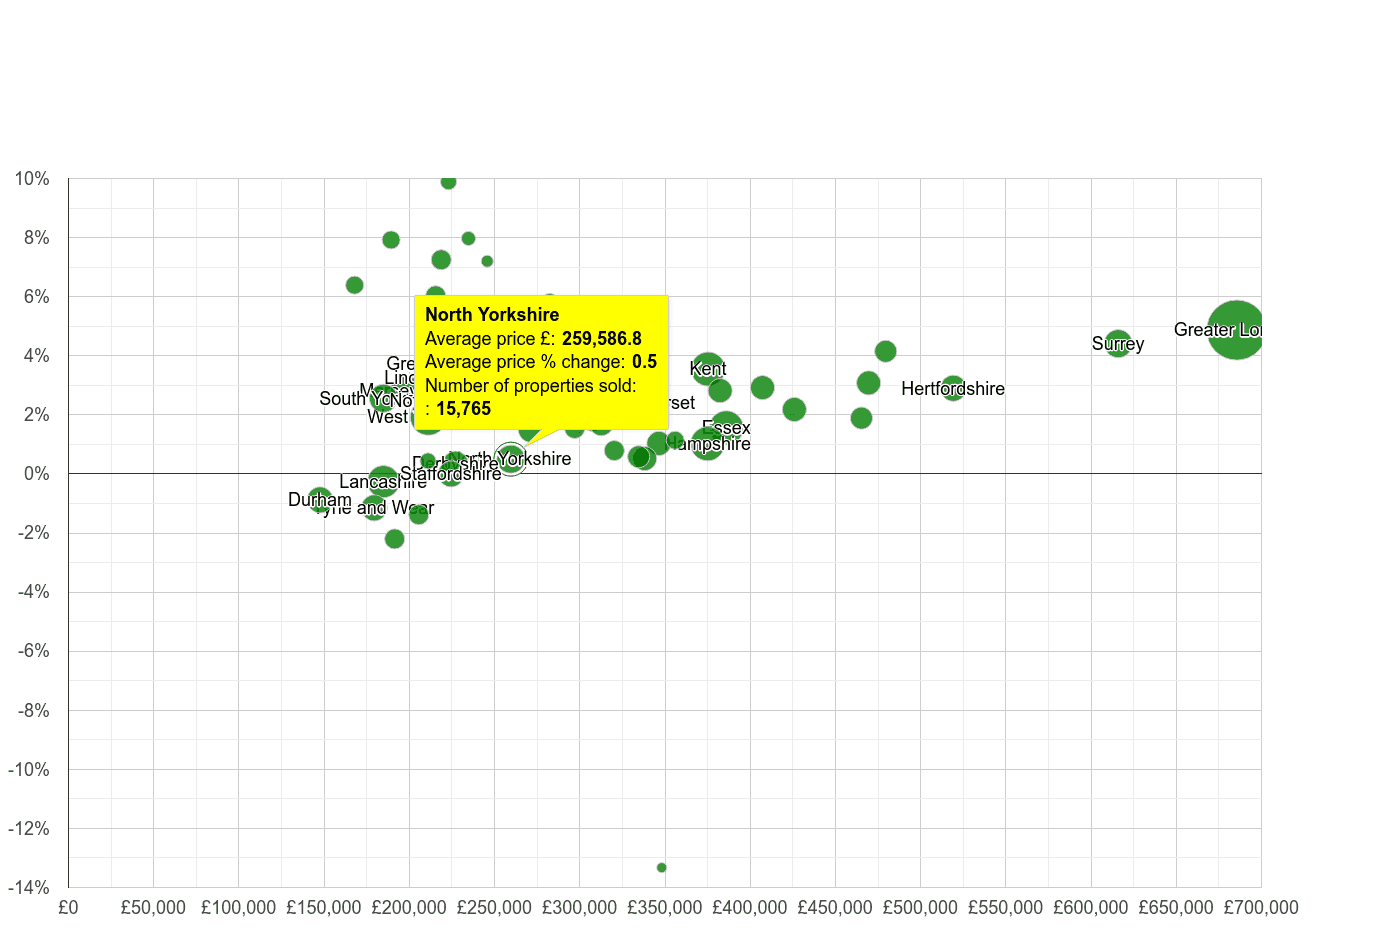 North Yorkshire house prices compared to other counties